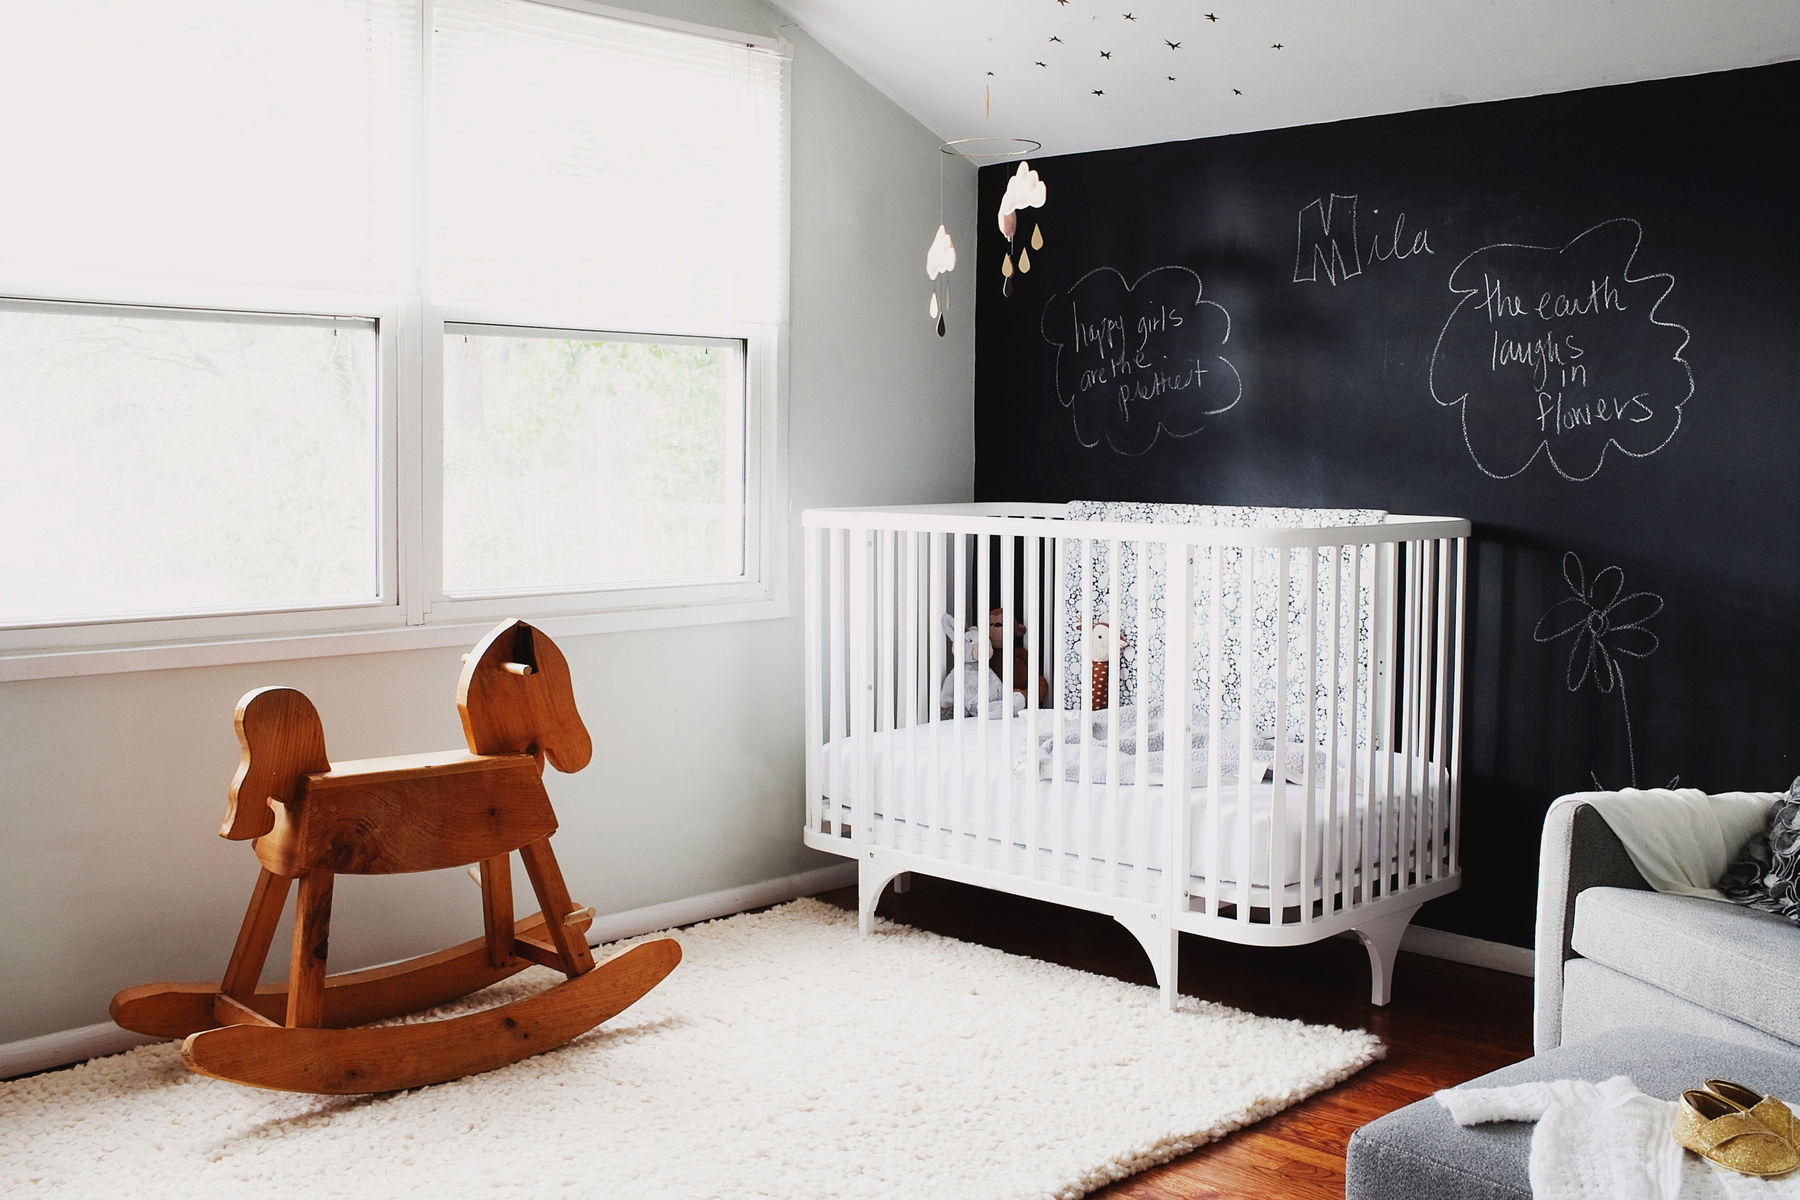 Baby bed that connects to parents bed - Baby Bed That Connects To Parents Bed 53